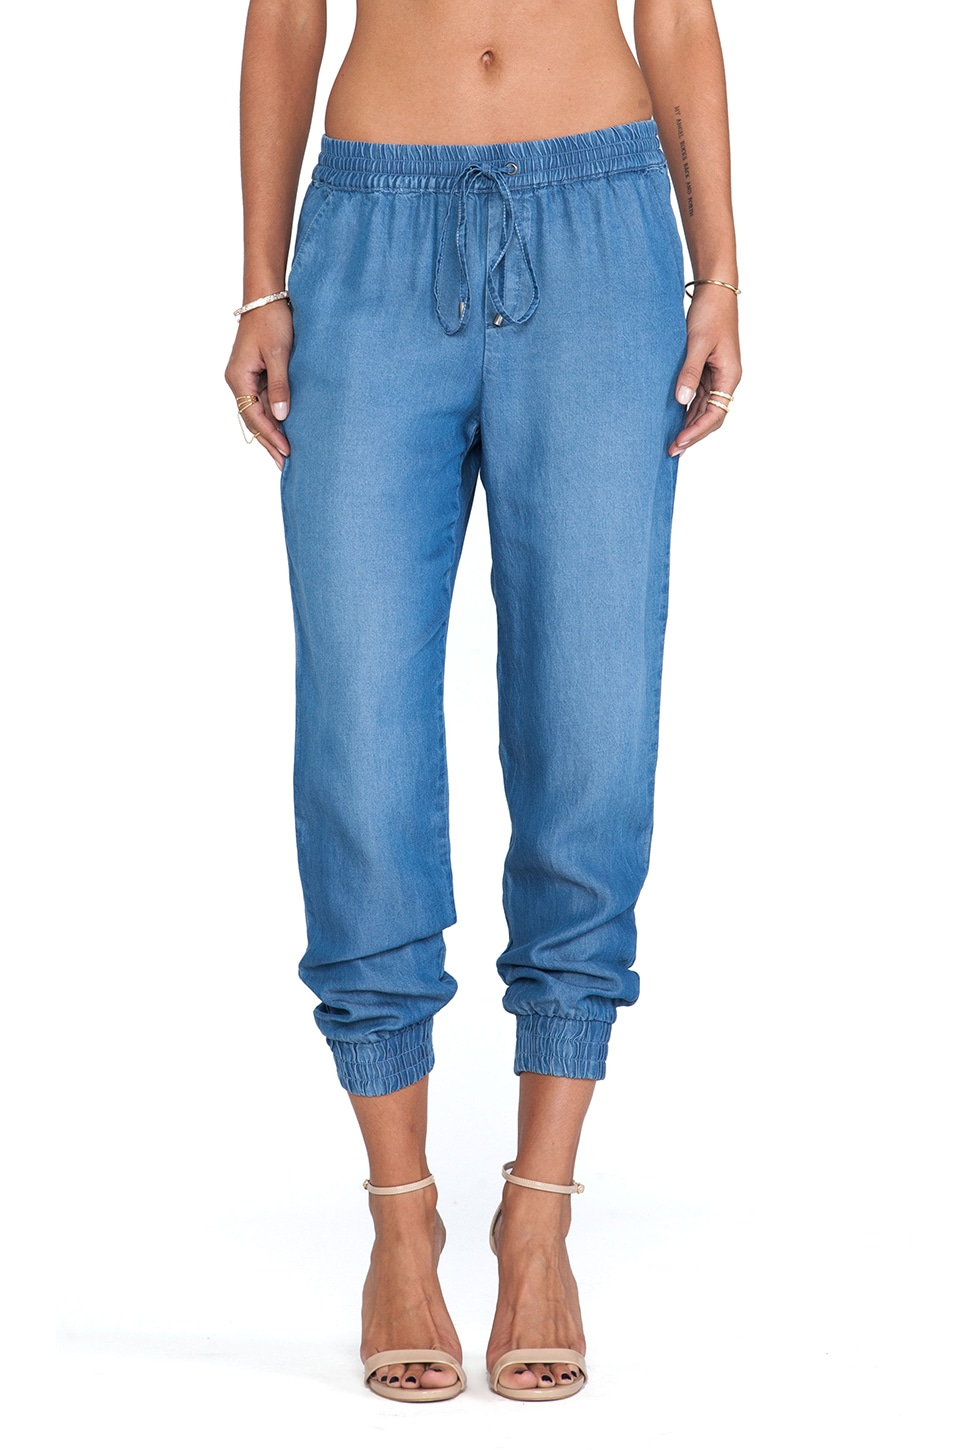 Splendid Indigo Dye Jogger in Medium Wash